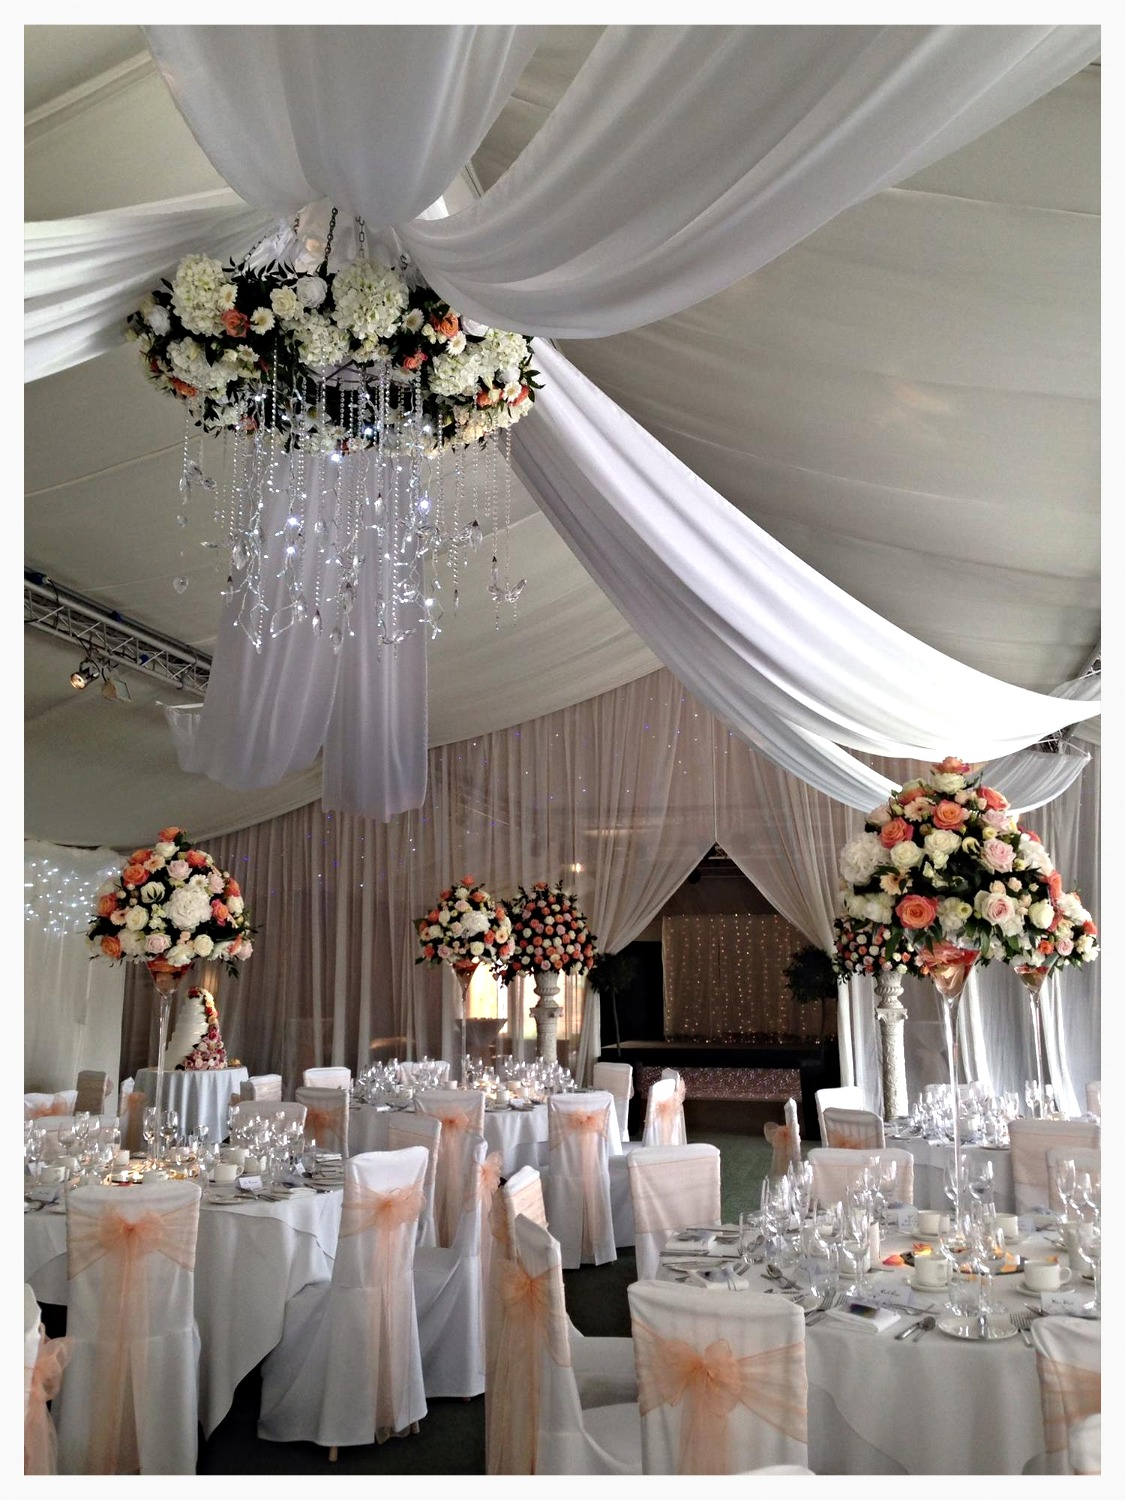 Wedding Decorating - Essex